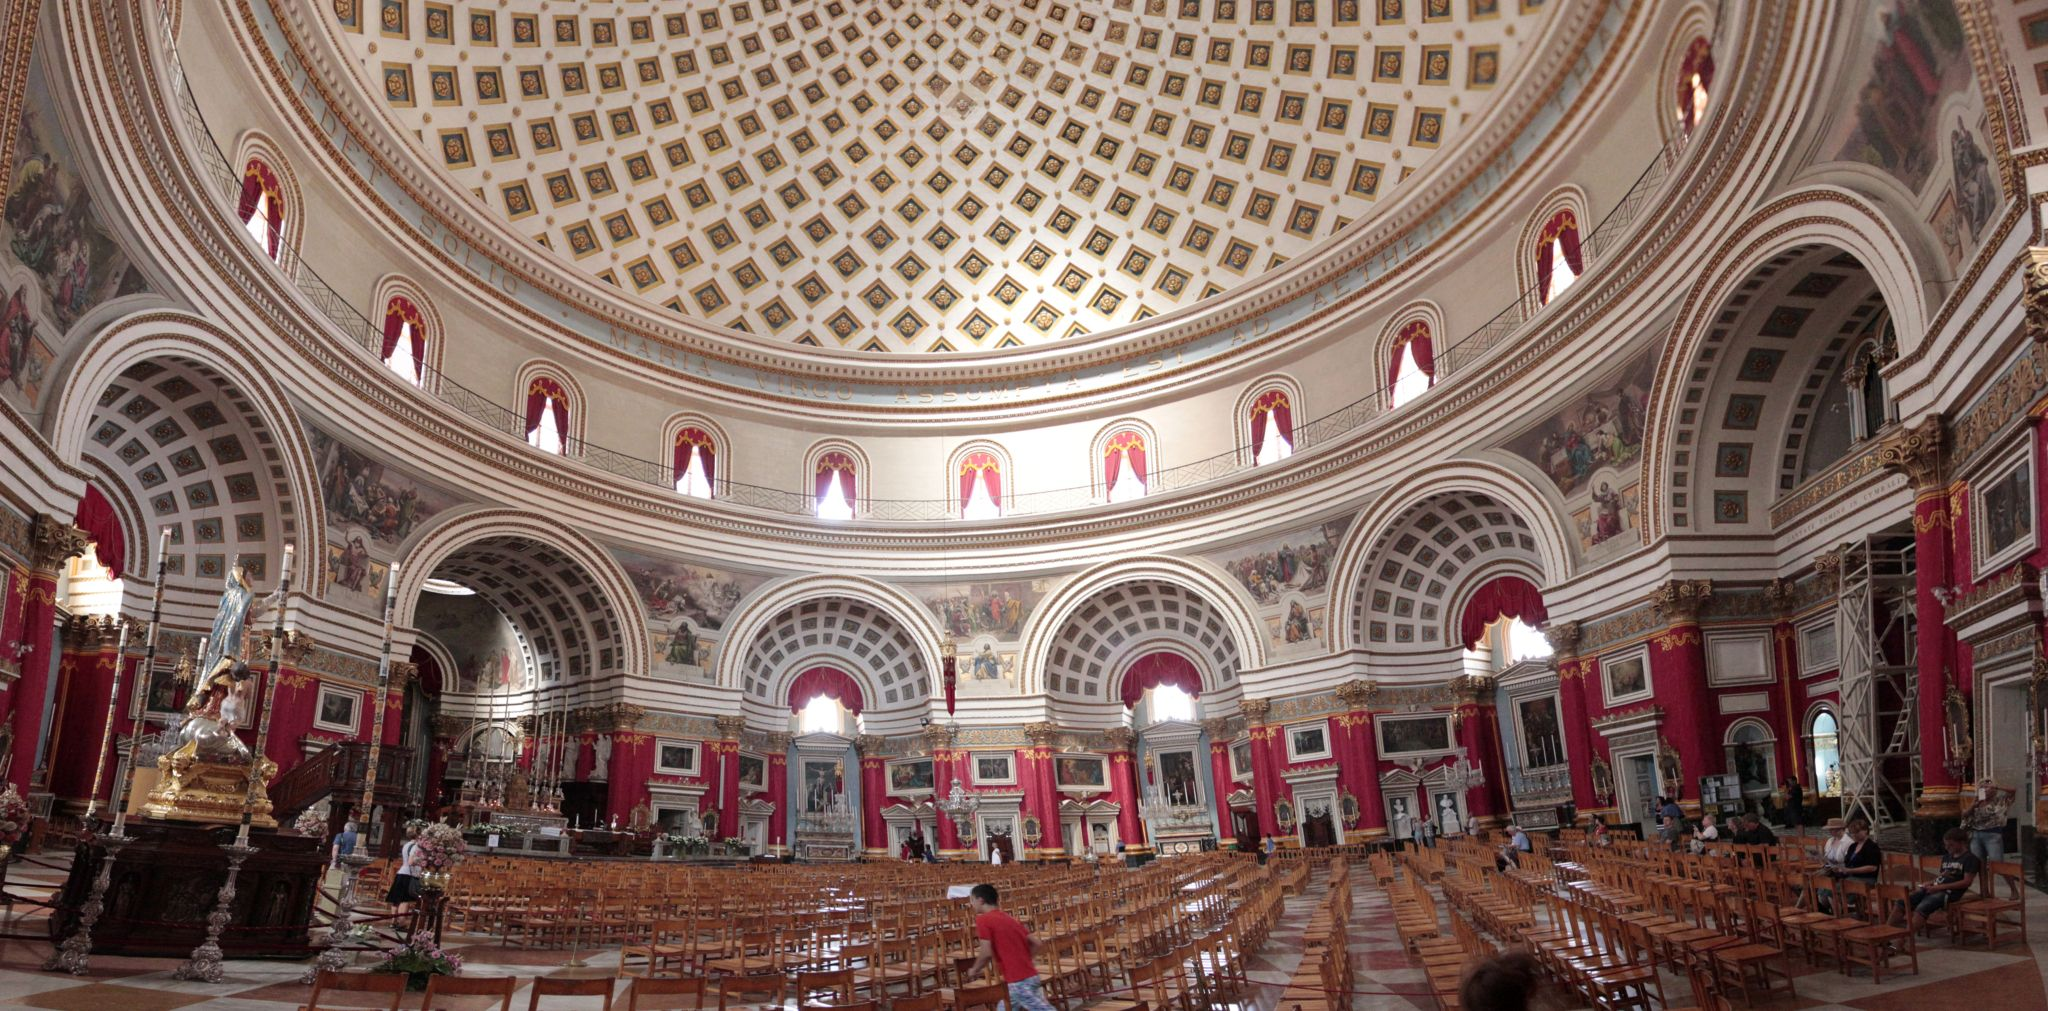 Rotunda of Mosta internal view